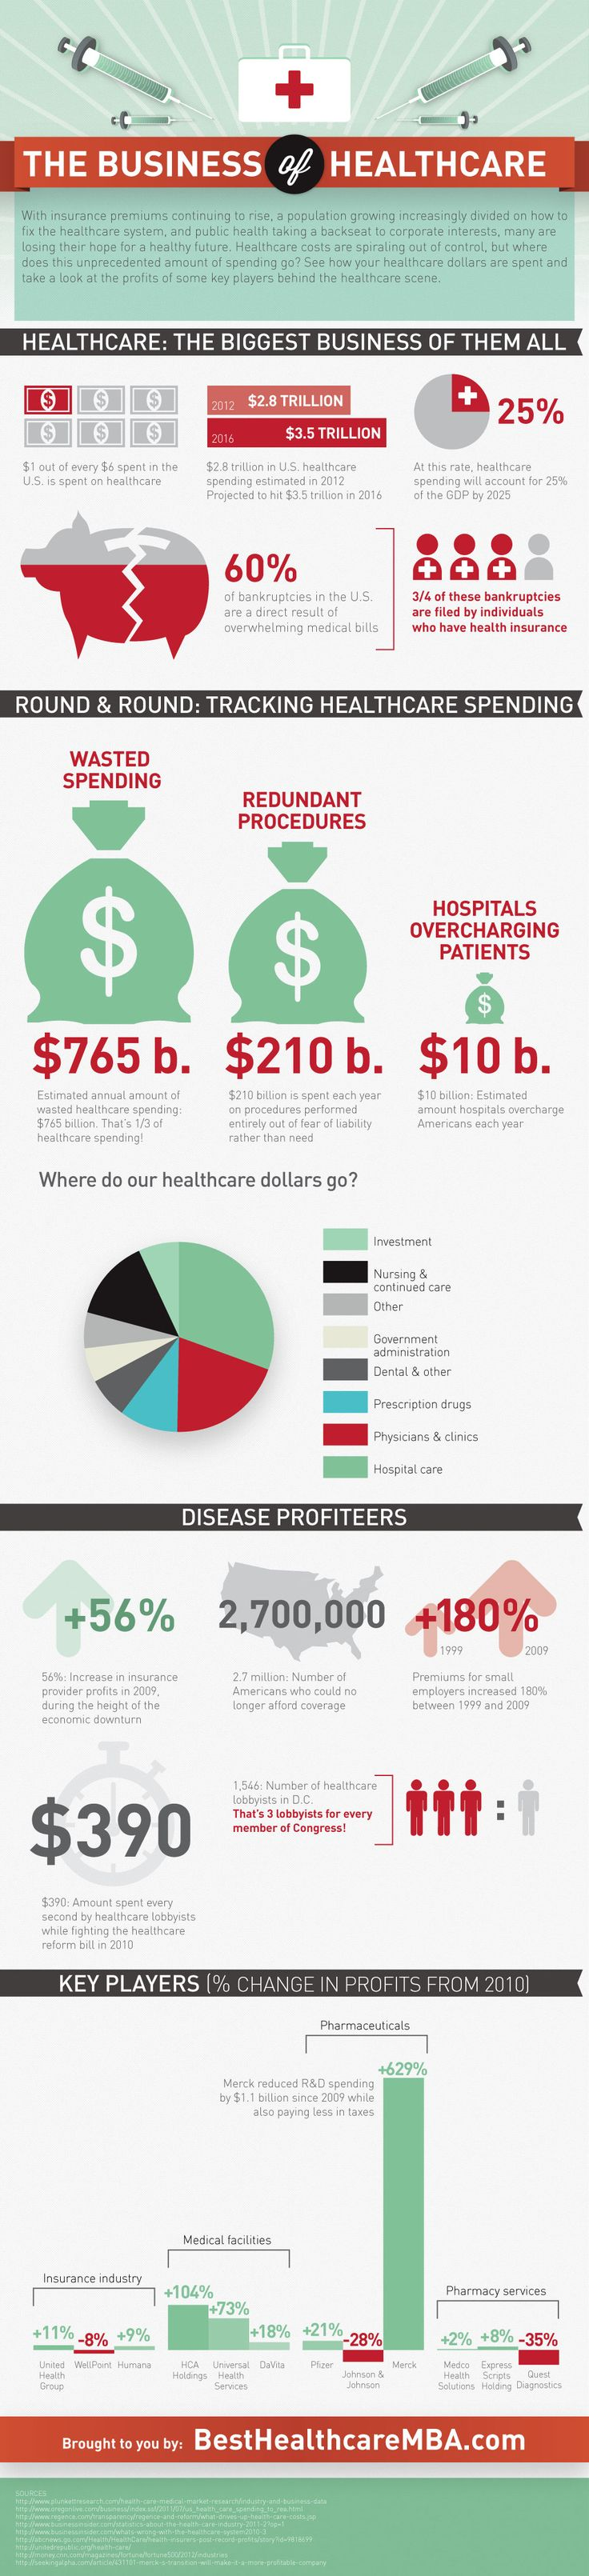 The Business of Healthcare #healthcare